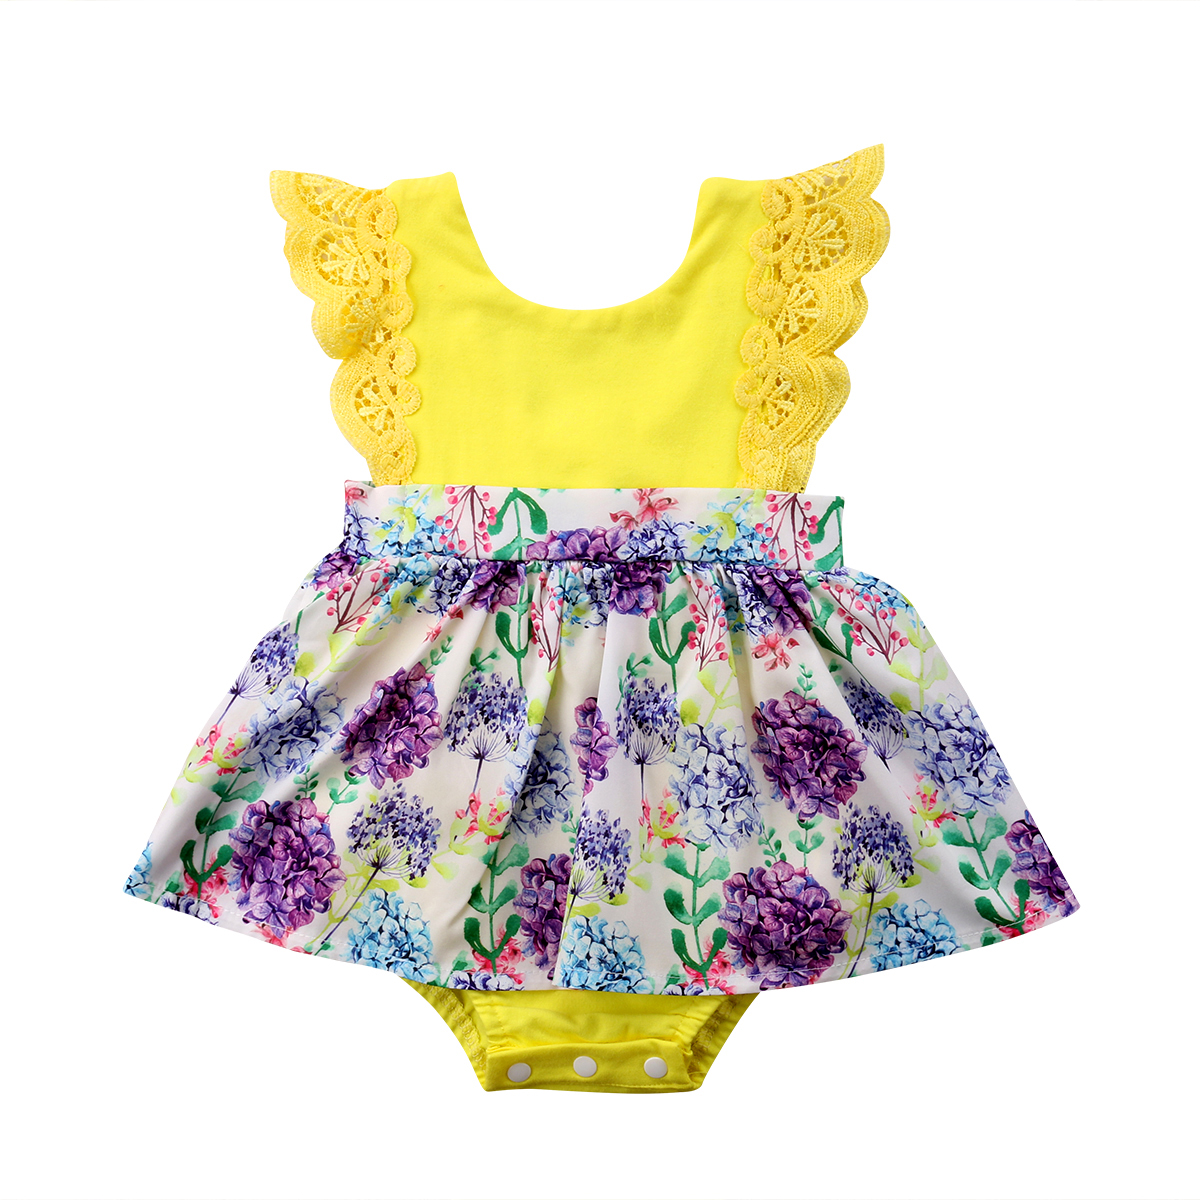 35be87d35aa Dress 5To6Y · Romper 18To24M